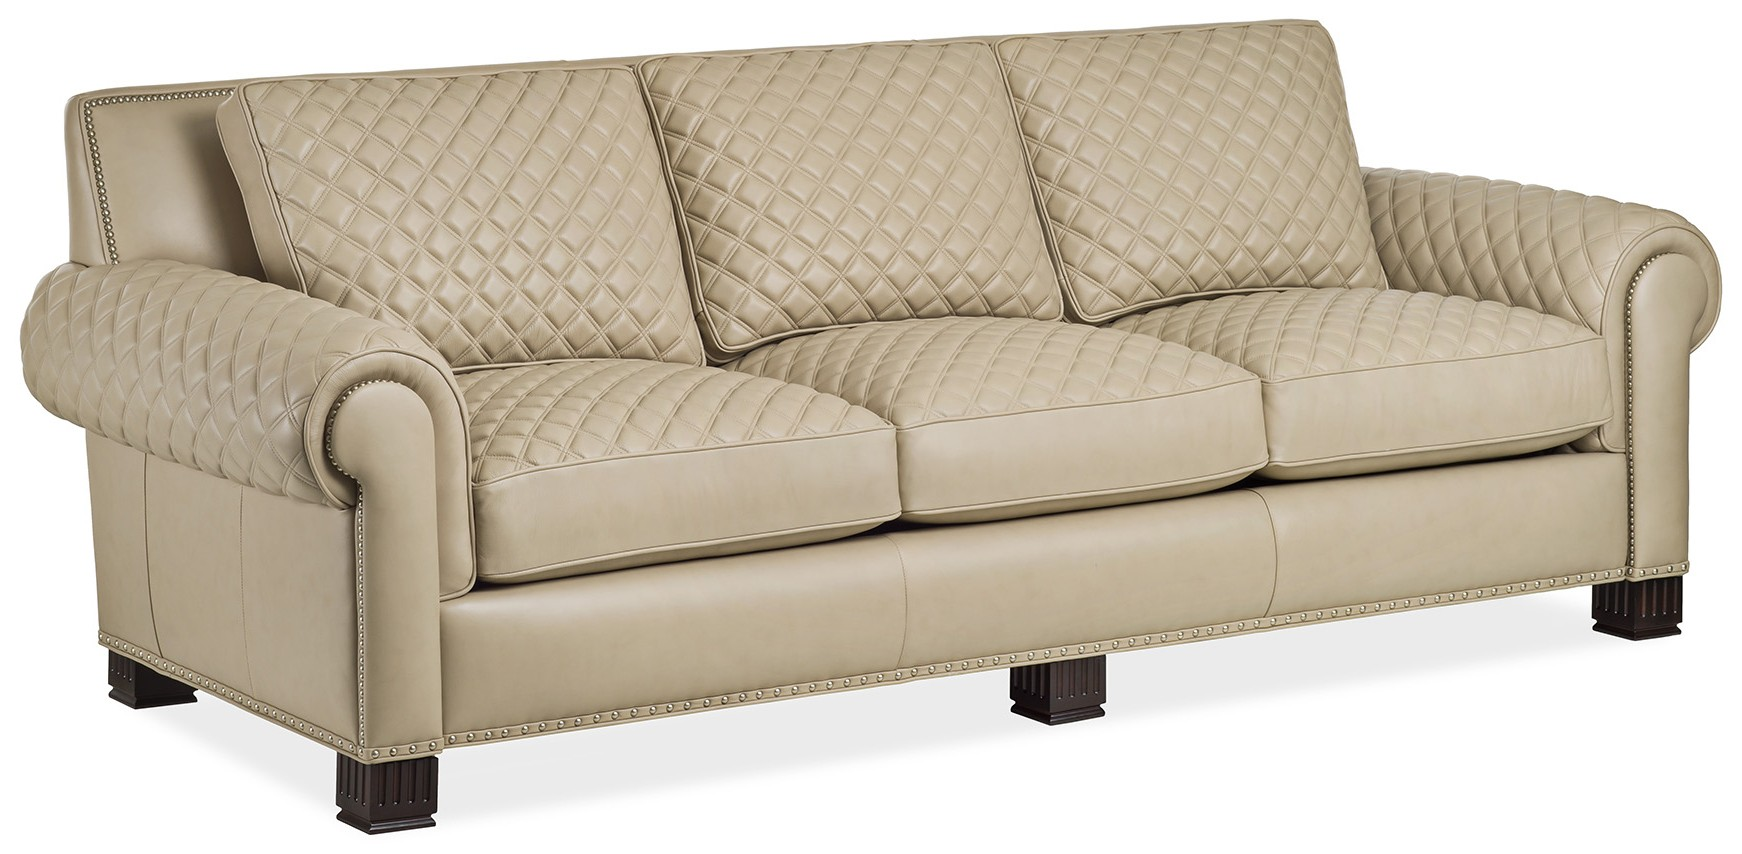 Quilted cream leather sofa - Bernadette Livingston : quilted sofa - Adamdwight.com